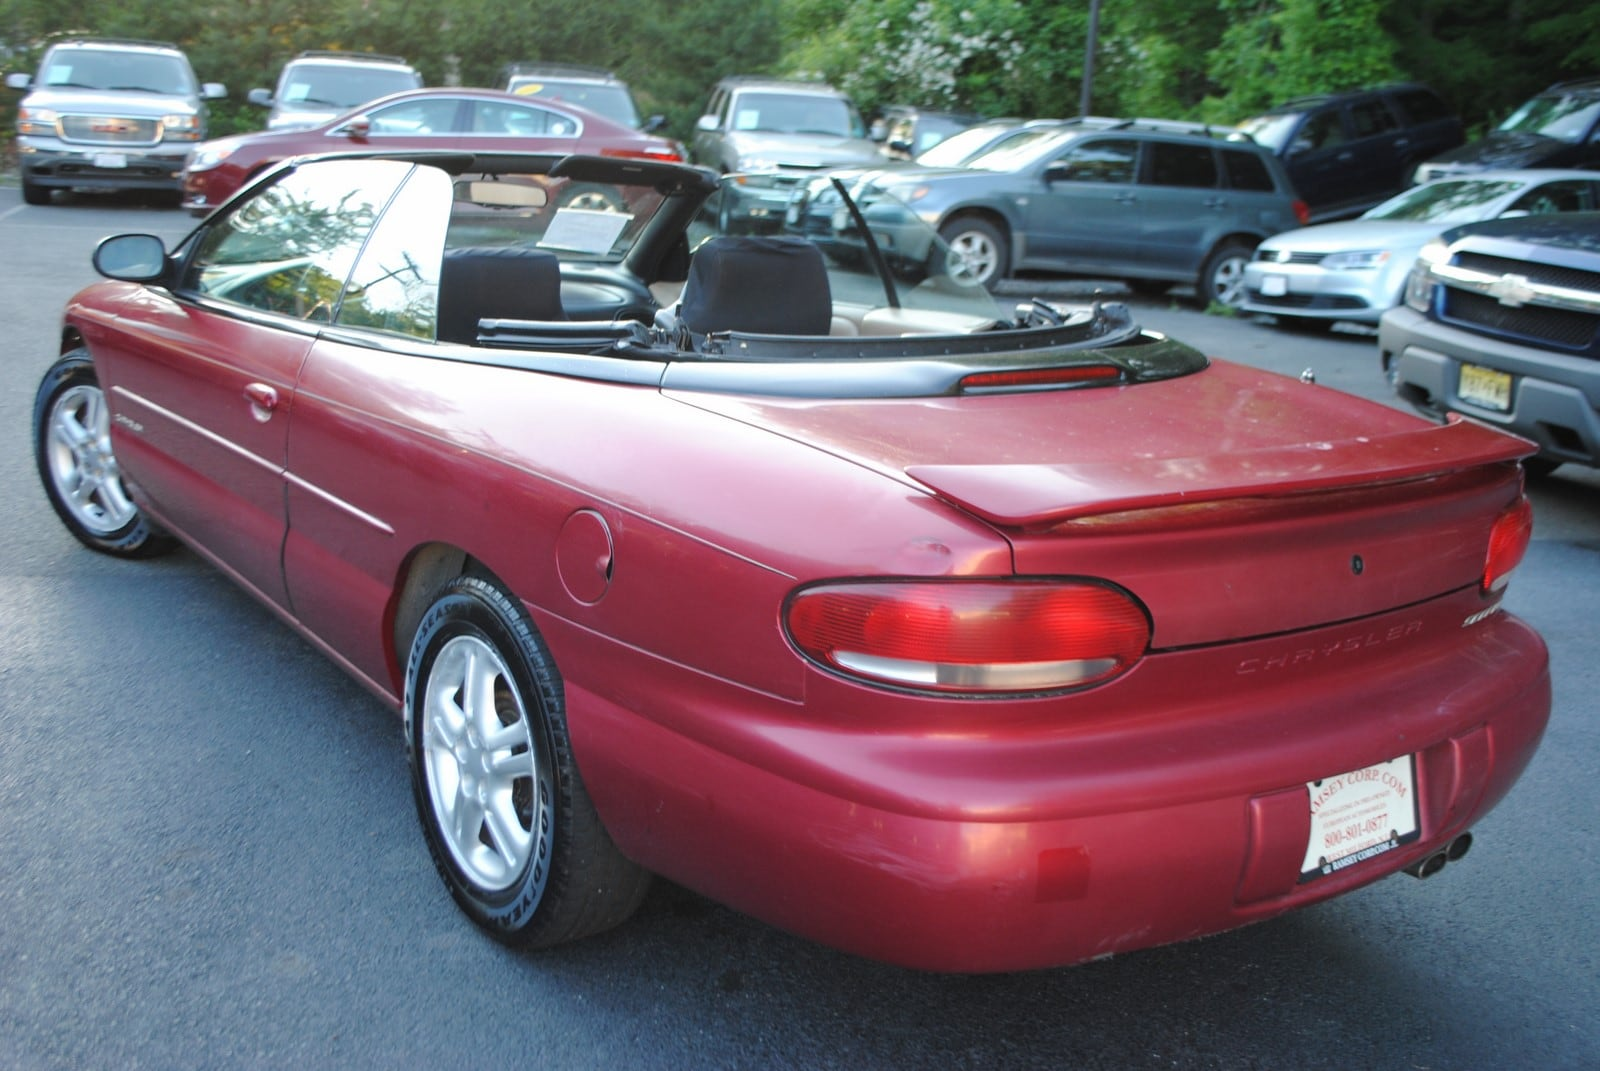 used 1997 chrysler sebring for sale west milford nj. Black Bedroom Furniture Sets. Home Design Ideas